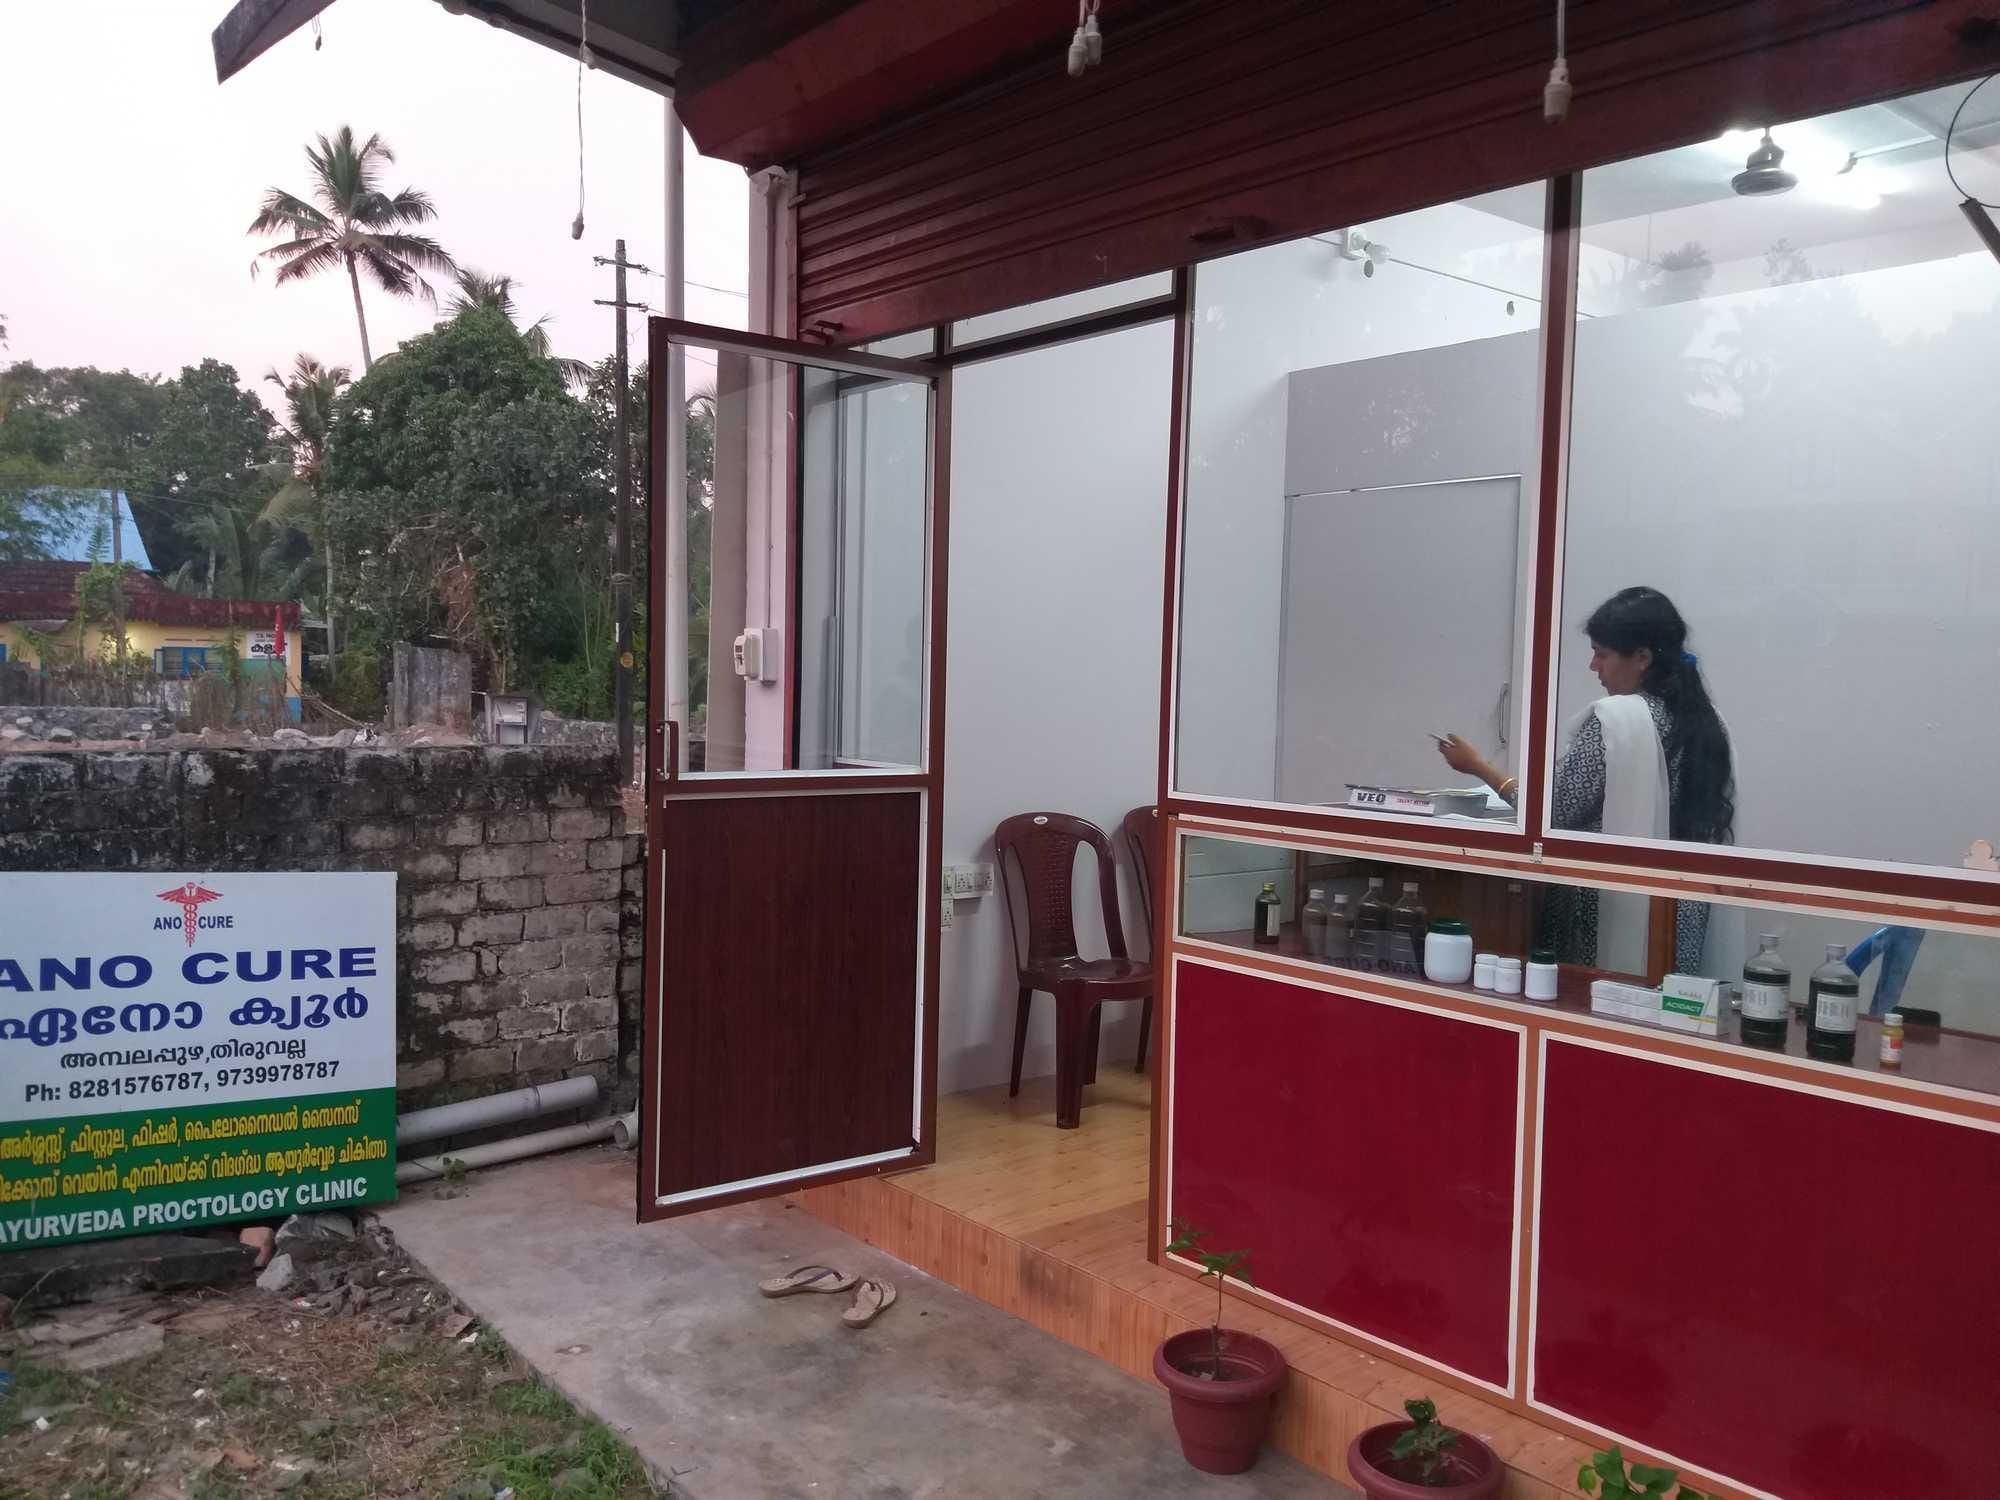 Ano Cure Speciality Clinic, CLINIC,  service in Alappuzha, Alappuzha